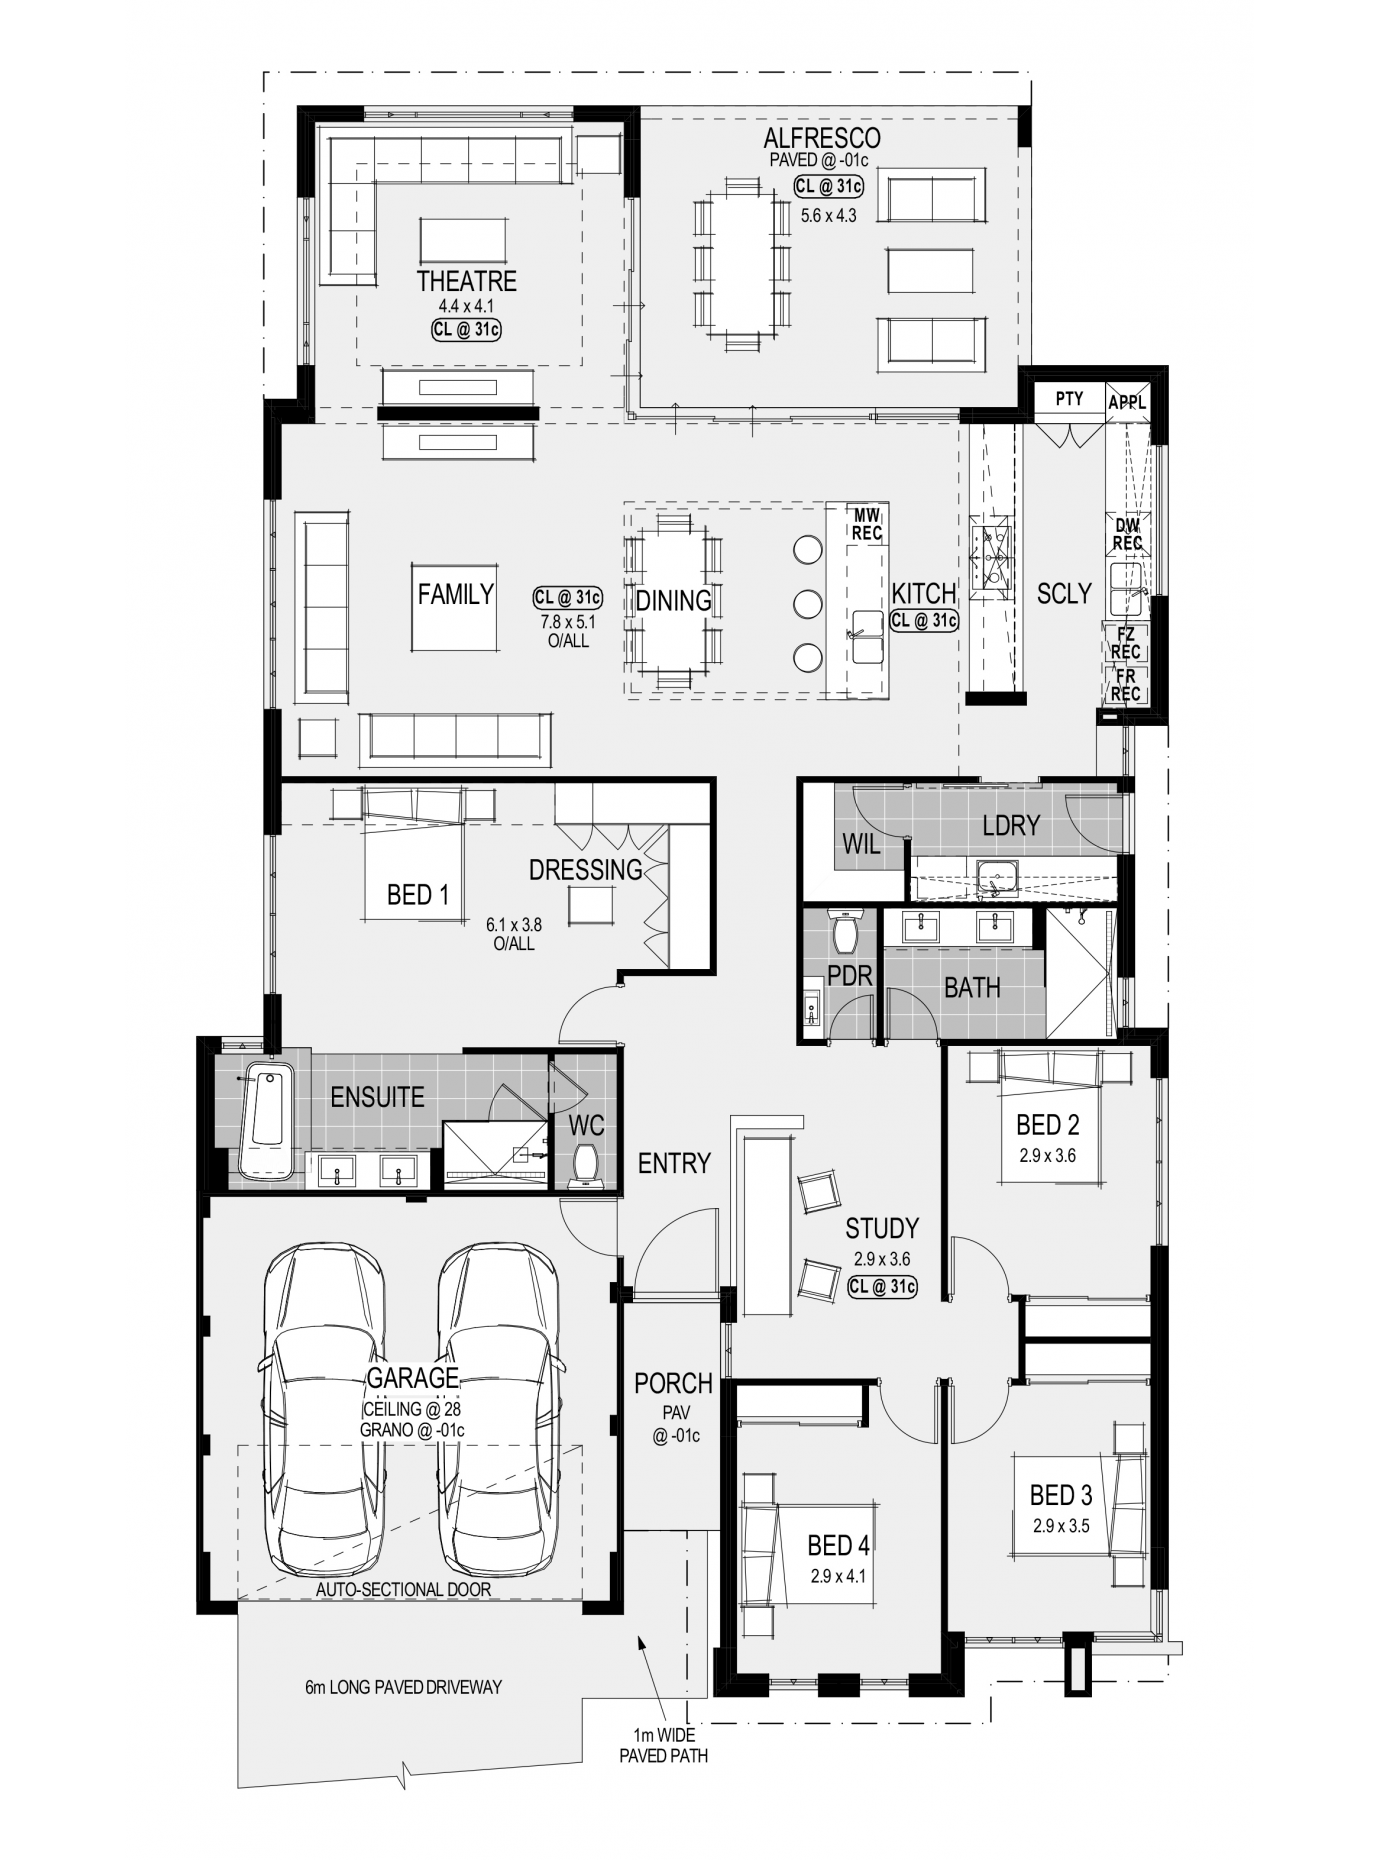 The Oakland Platinum Display Home By Home Group Wa Newhousing Com Au House Plans Australia House Plans Beach House Floor Plans